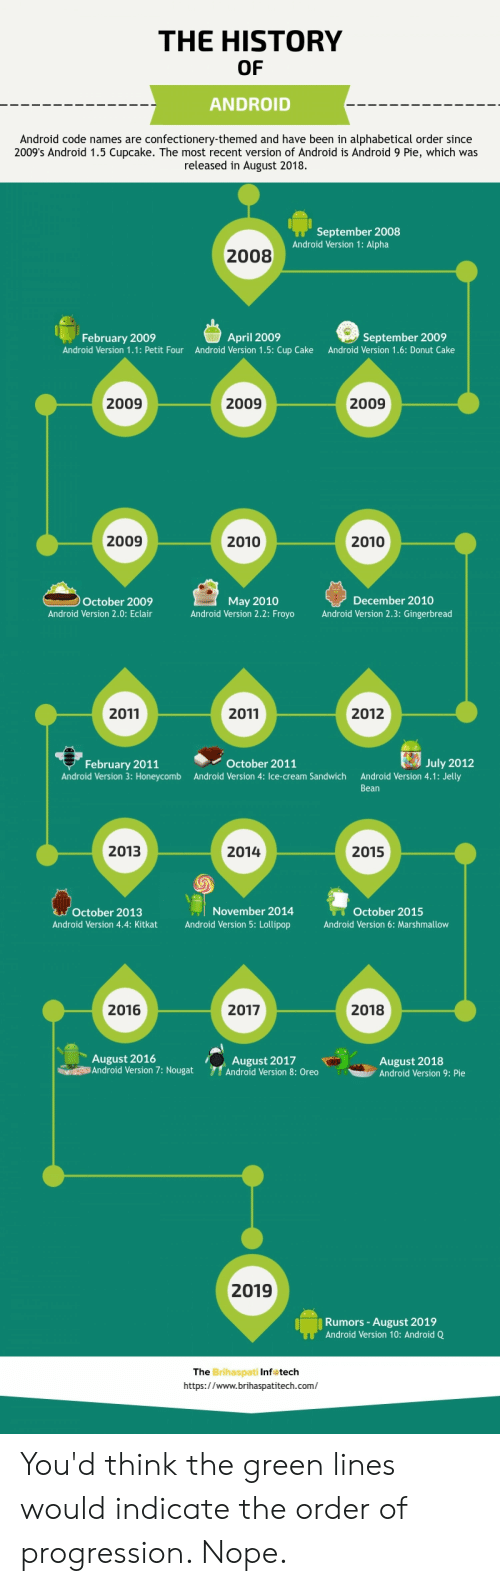 Code Names: THE HISTORY  OF  ANDROID  Android code names are confectionery-themed and have been in alphabetical order since  2009's Android 1.5 Cupcake. The most recent version of Android is Android 9 Pie, which was  released in August 2018  September 2008  Android Version 1: Alpha  2008  April 2009  Android Version 1.5:Cup Cake  September 2009  February 2009  Android Version 1.1: Petit Four  Android Version 1.6: Donut Cake  2009  2009  2009  2009  2010  2010  December 2010  October 2009  Android Version 2.0: Eclair  May 2010  Android Version 2.2: FroyoAndroid Version 2.3: Gingerbread  2011  2011  2012  October 2011  July 2012  February 2011  Android Version 3: Honeycomb  Android Version 4: Ice-cream Sandwich  Android Version 4.1: Jelly  Bean  2013  2014  2015  October 2013  Android Version 4.4: Kitkat  November 2014  Android Version 5: Lollipop  October 2015  Android Version 6: Marshmallow  2016  2017  2018  August 2016  Android Version 7: Nougat  August 2017  Android Version 8: Oreo  August 2018  Android Version 9: Pie  2019  Rumors-August 2019  Android Version 10: Android Q  The  Brihaspati Inf tech  https://www.brihaspatitech.com/ You'd think the green lines would indicate the order of progression. Nope.